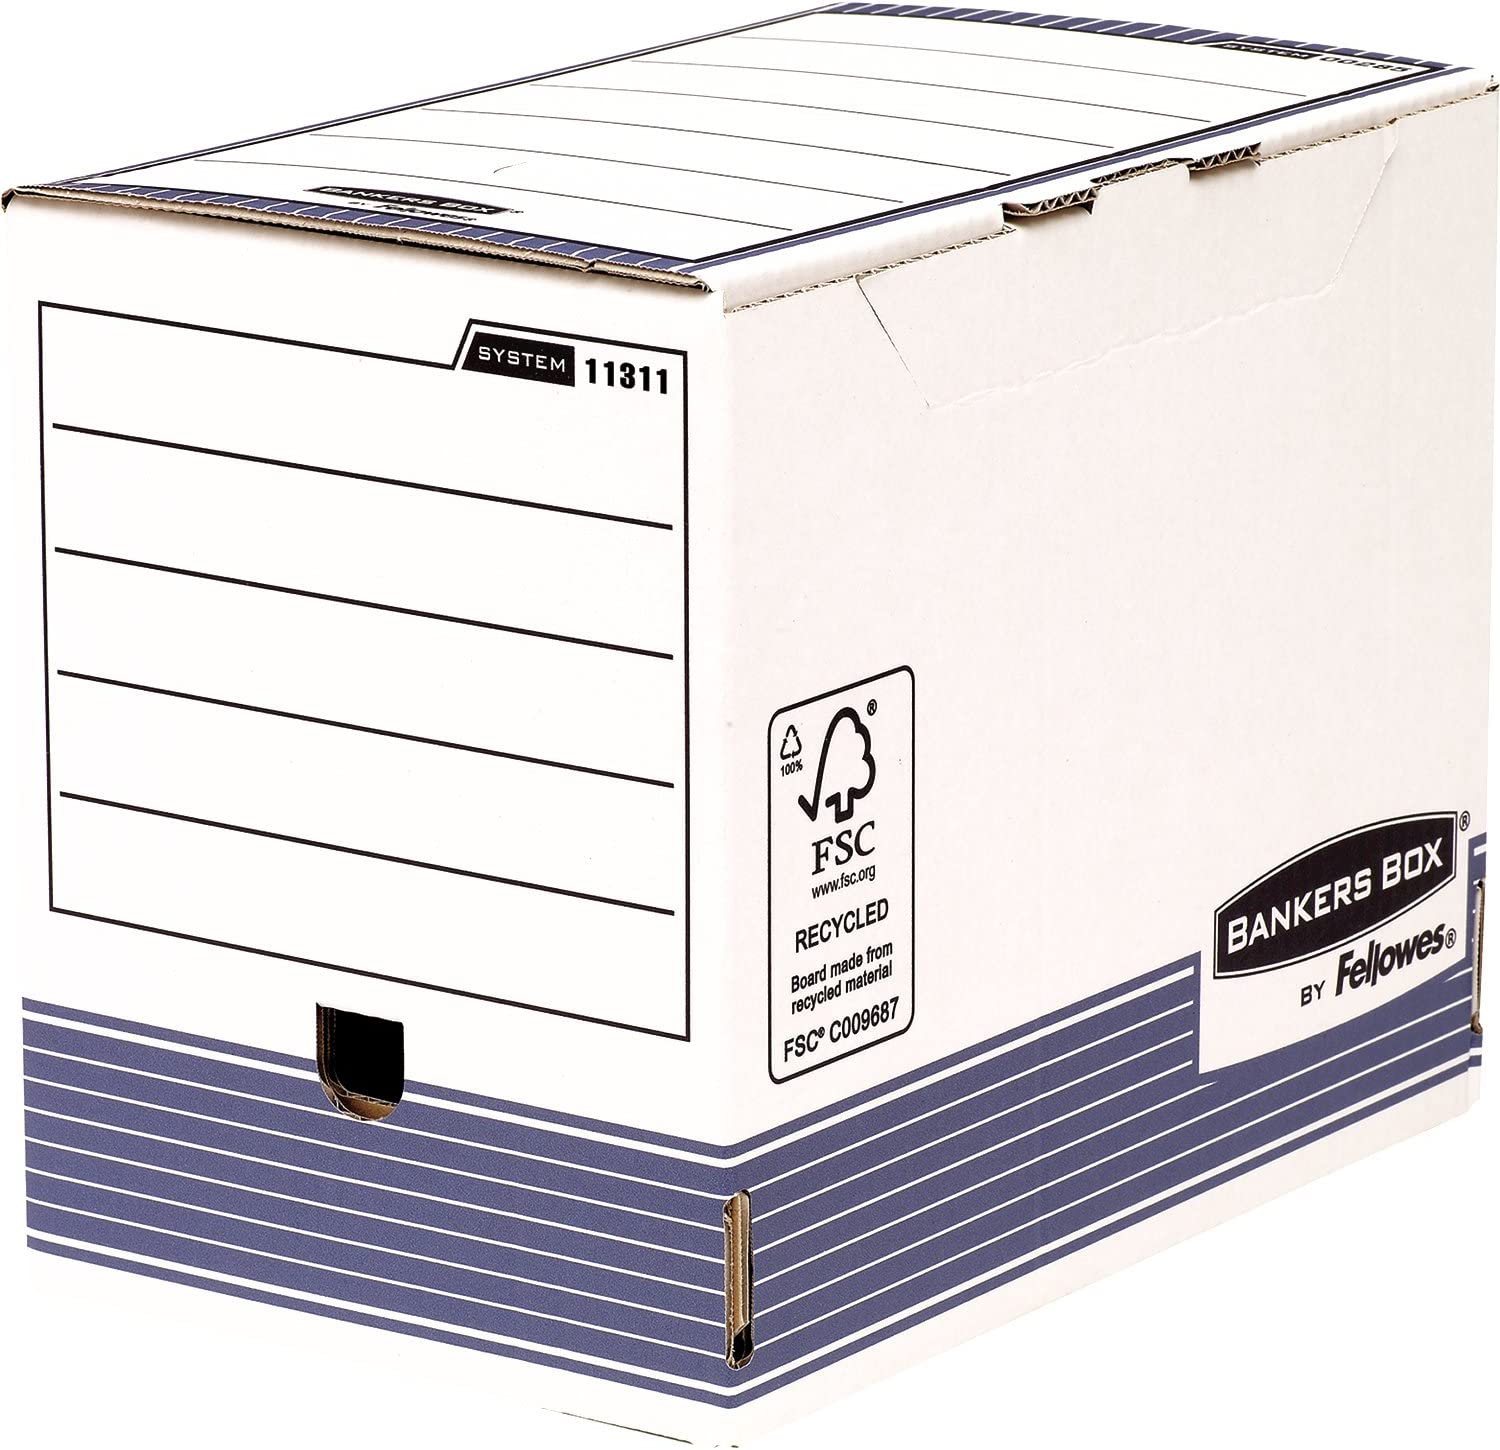 Bankers Box 1130902A4Archive Pack of Free shipping anywhere in the nation 100 mm 10 A 200 2021 model